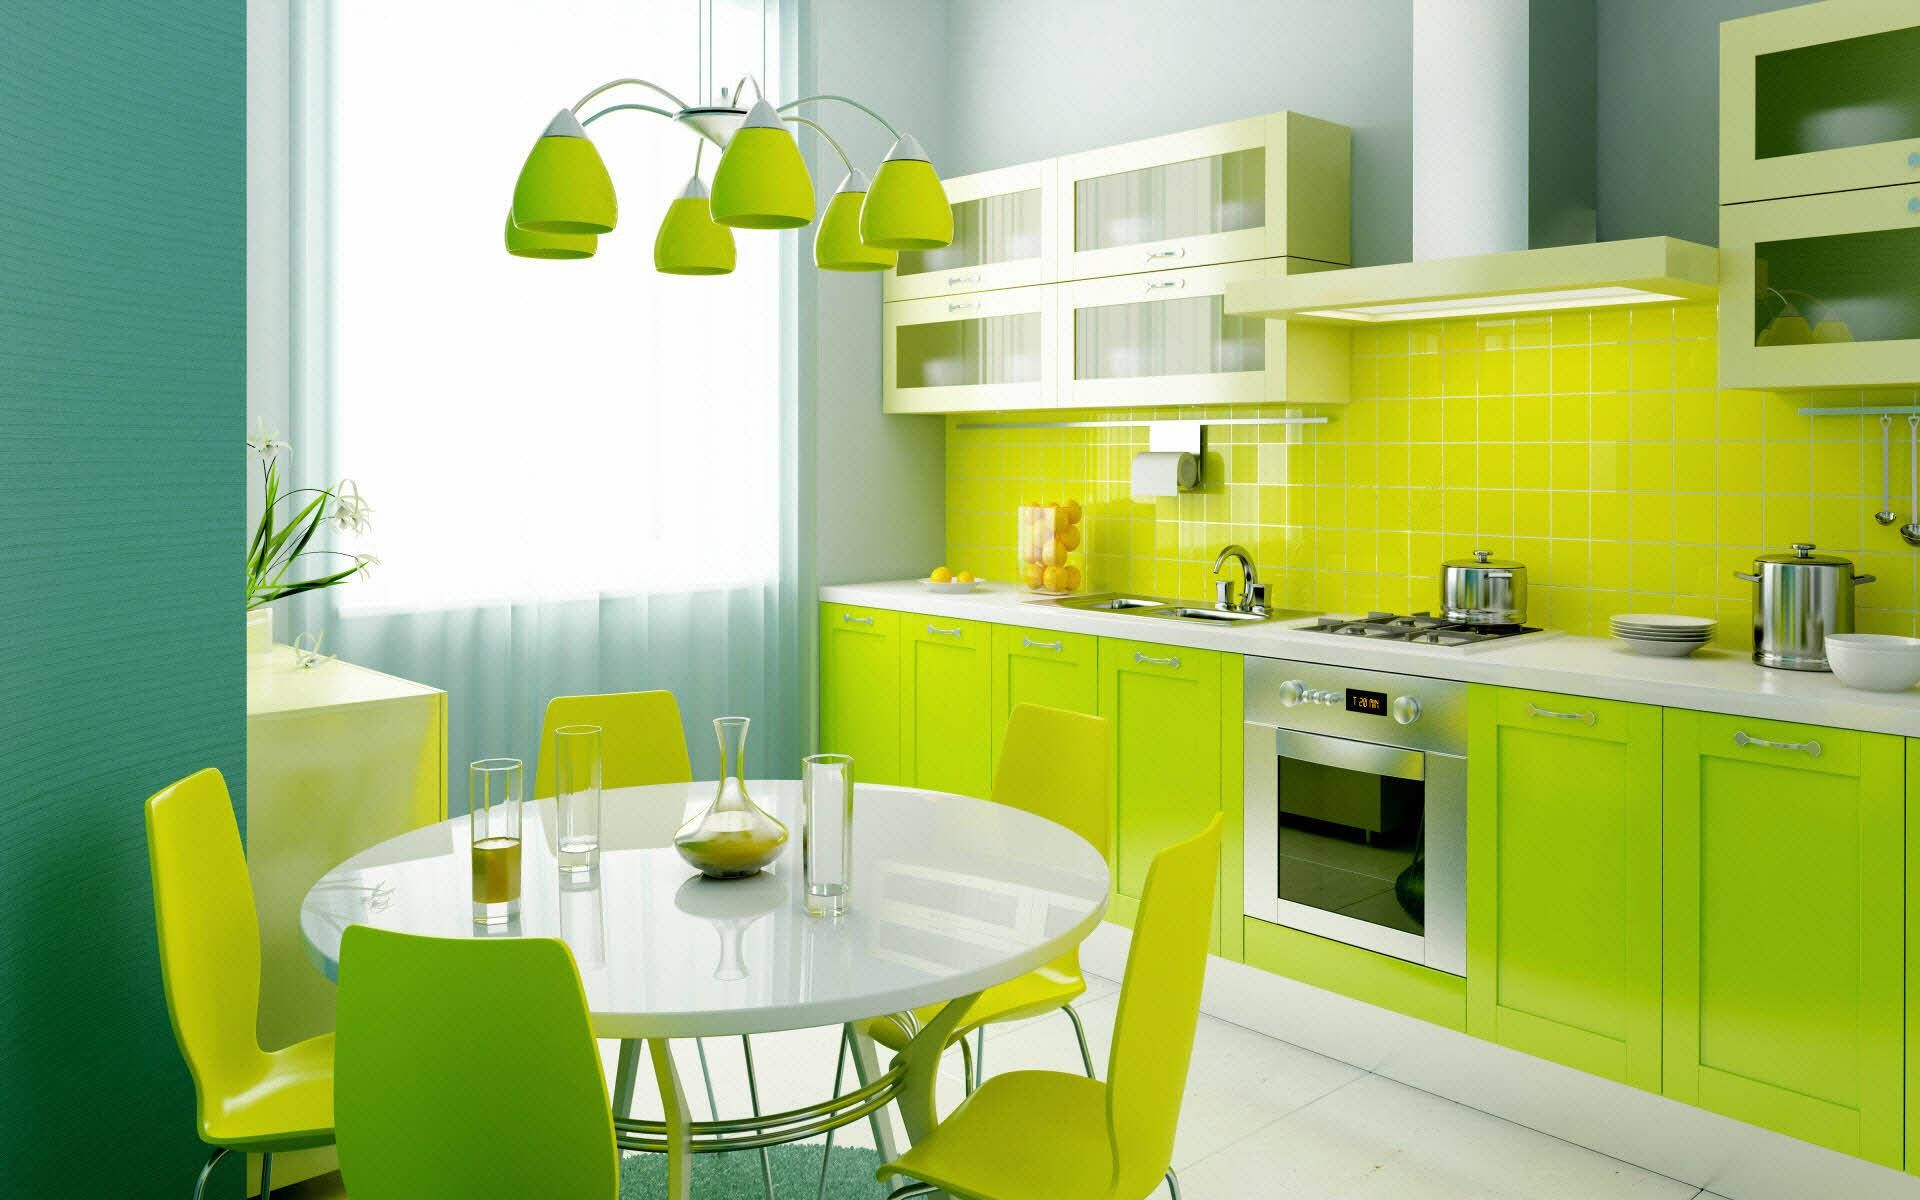 Colorful Glass Backsplash Ideas Adding Digital Prints To Modern